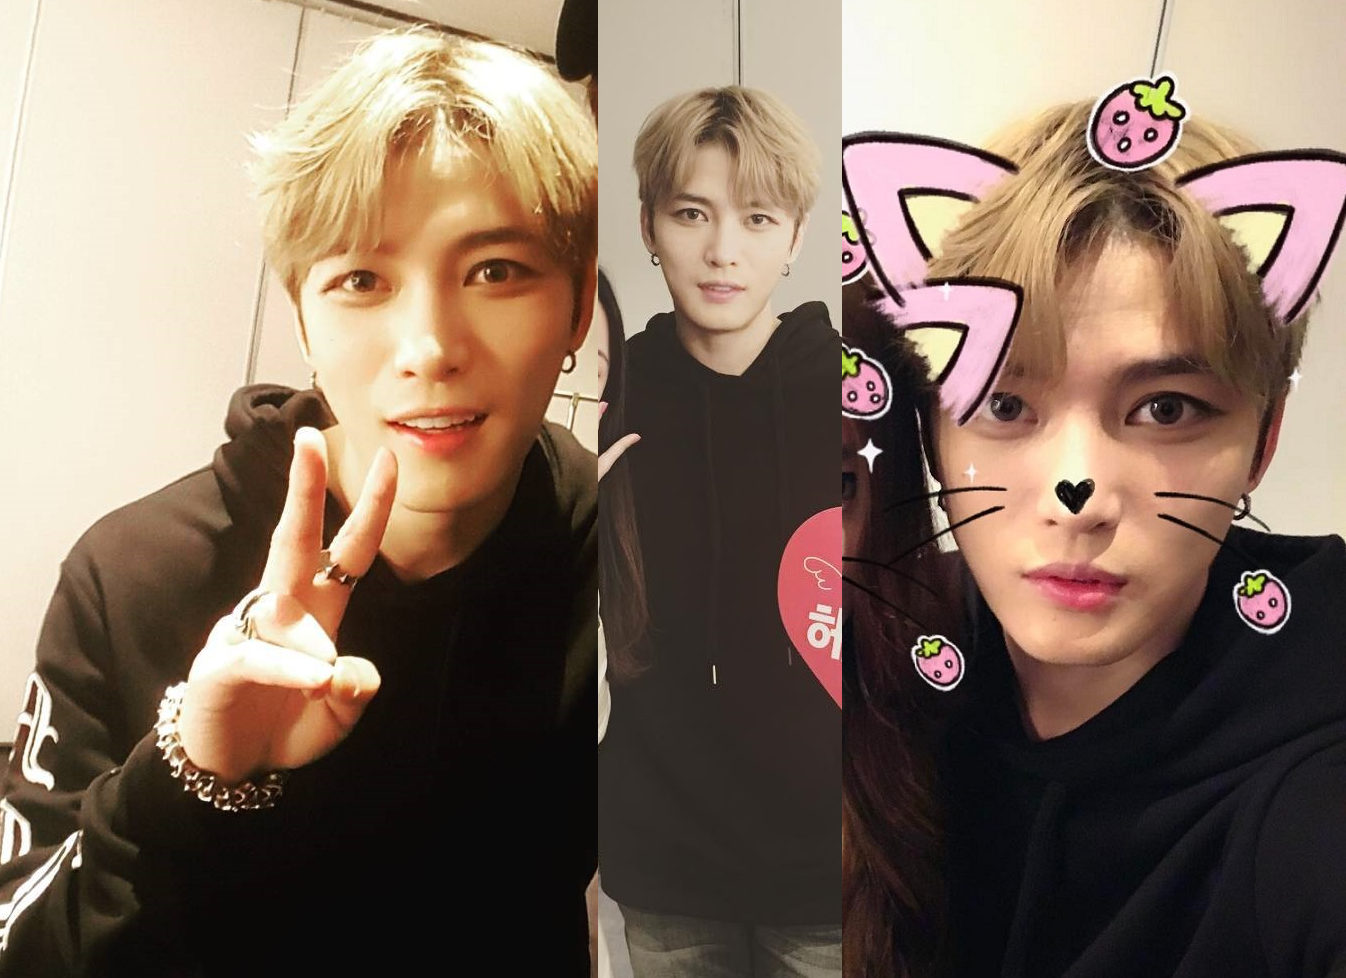 [OTHER INSTAGRAM] 170326 The Rebirth of J in Macau – Backstage Photos with Kim Jaejoong